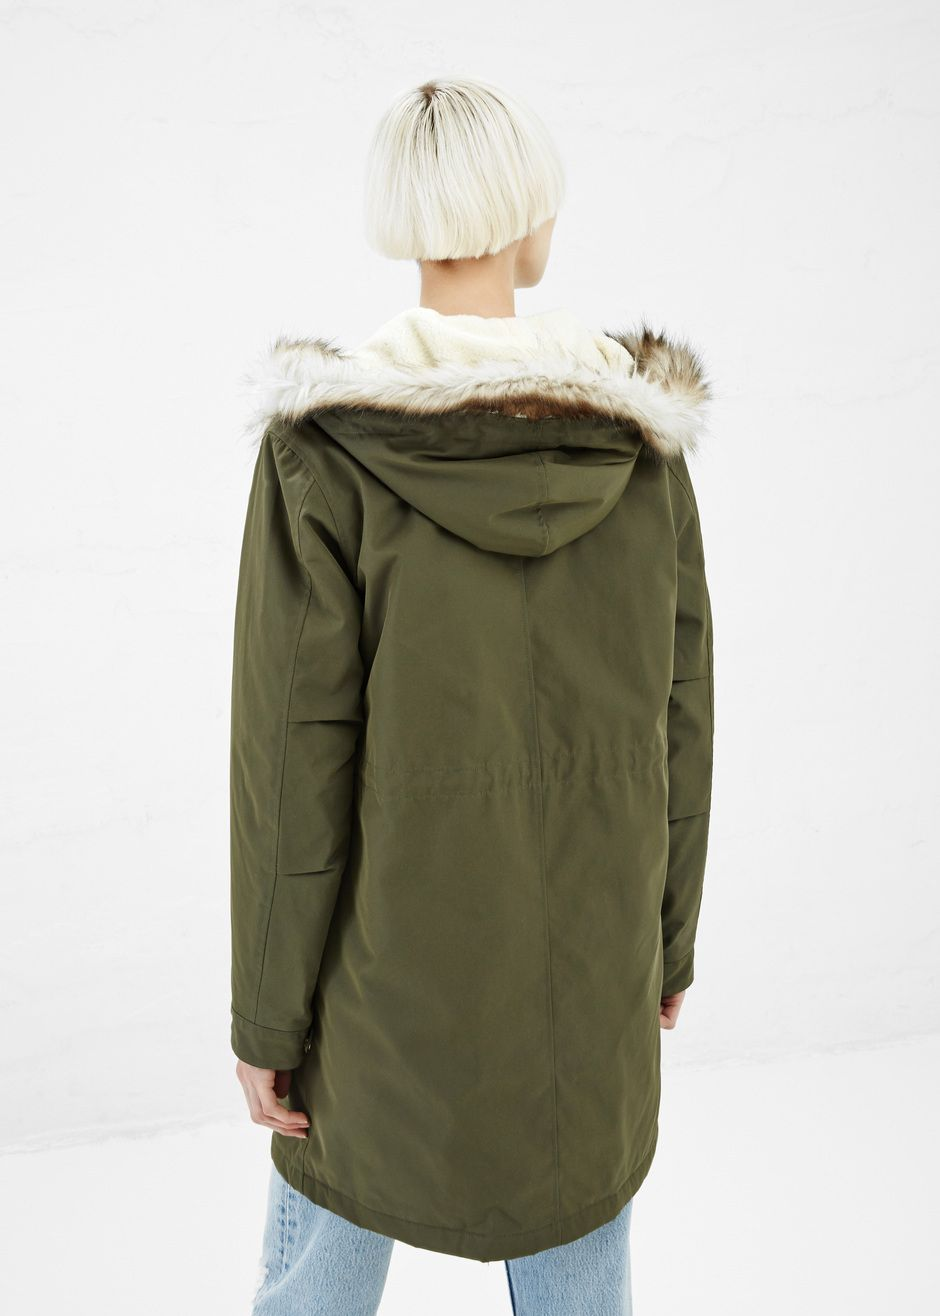 A.P.C. New Mod Parka (Khaki Green) | ☆ Style & Fashion ...